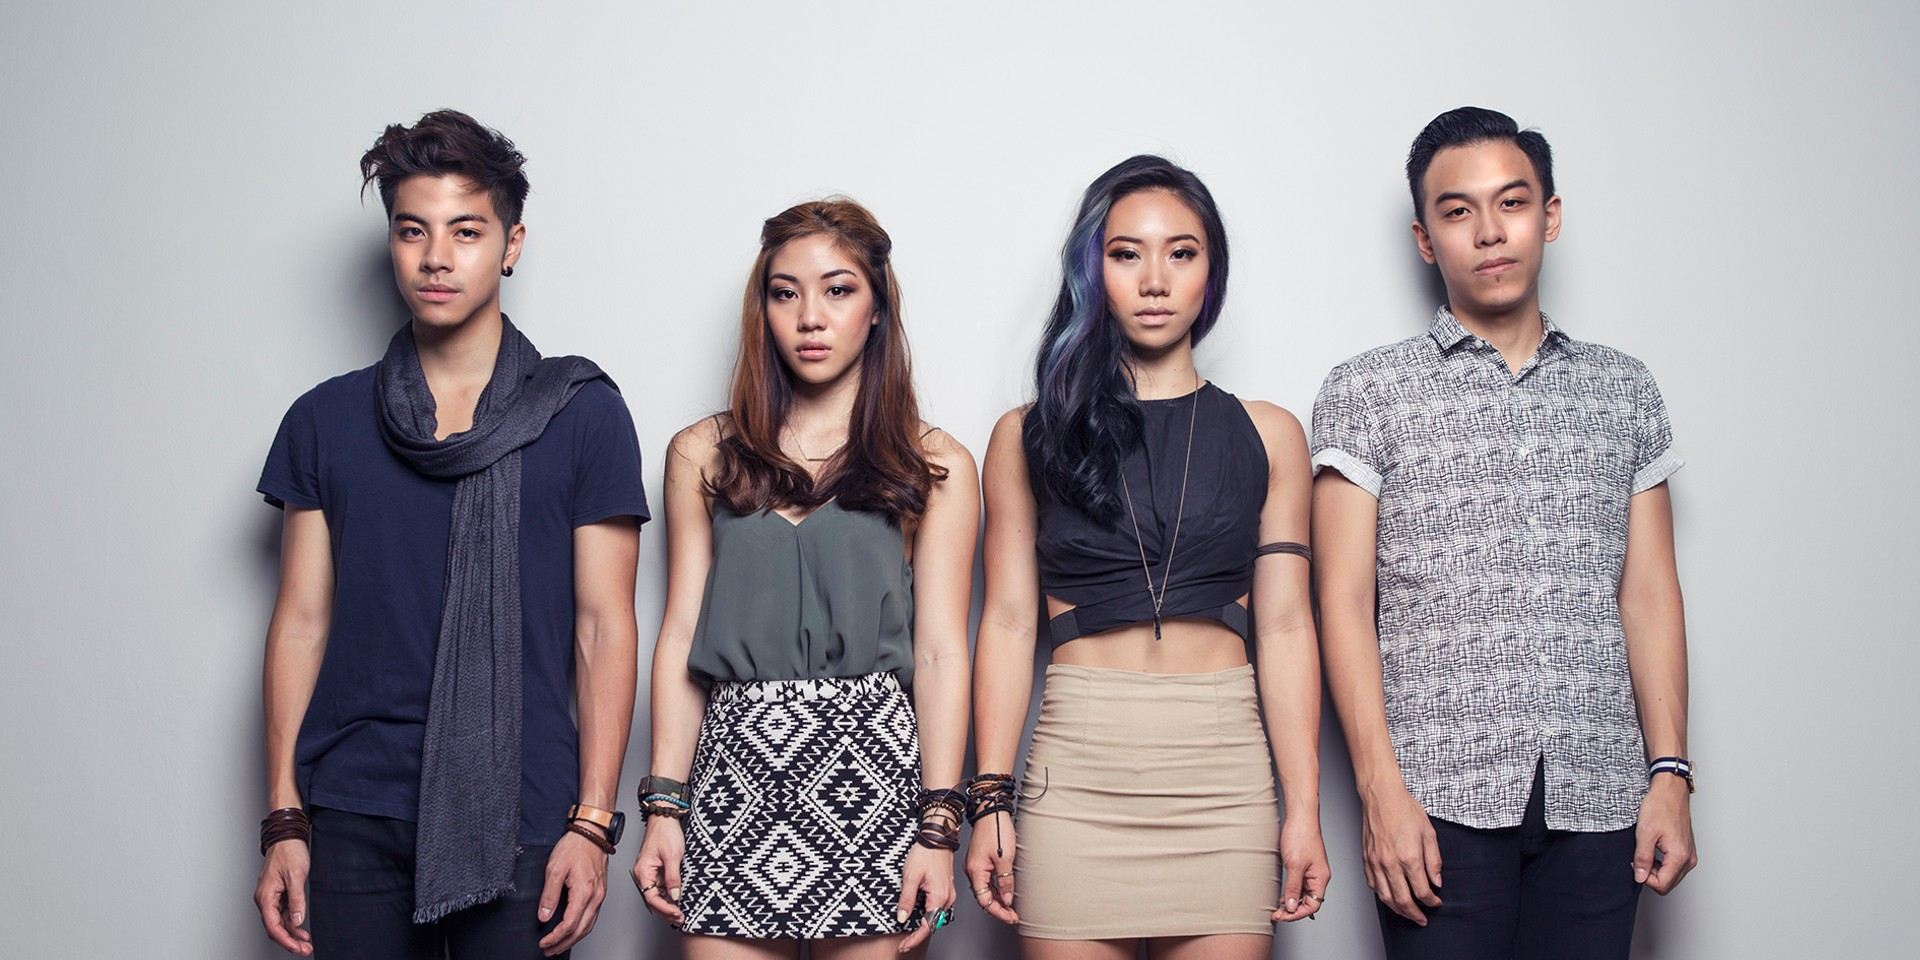 The Sam Willows to perform headlining show at The Coliseum